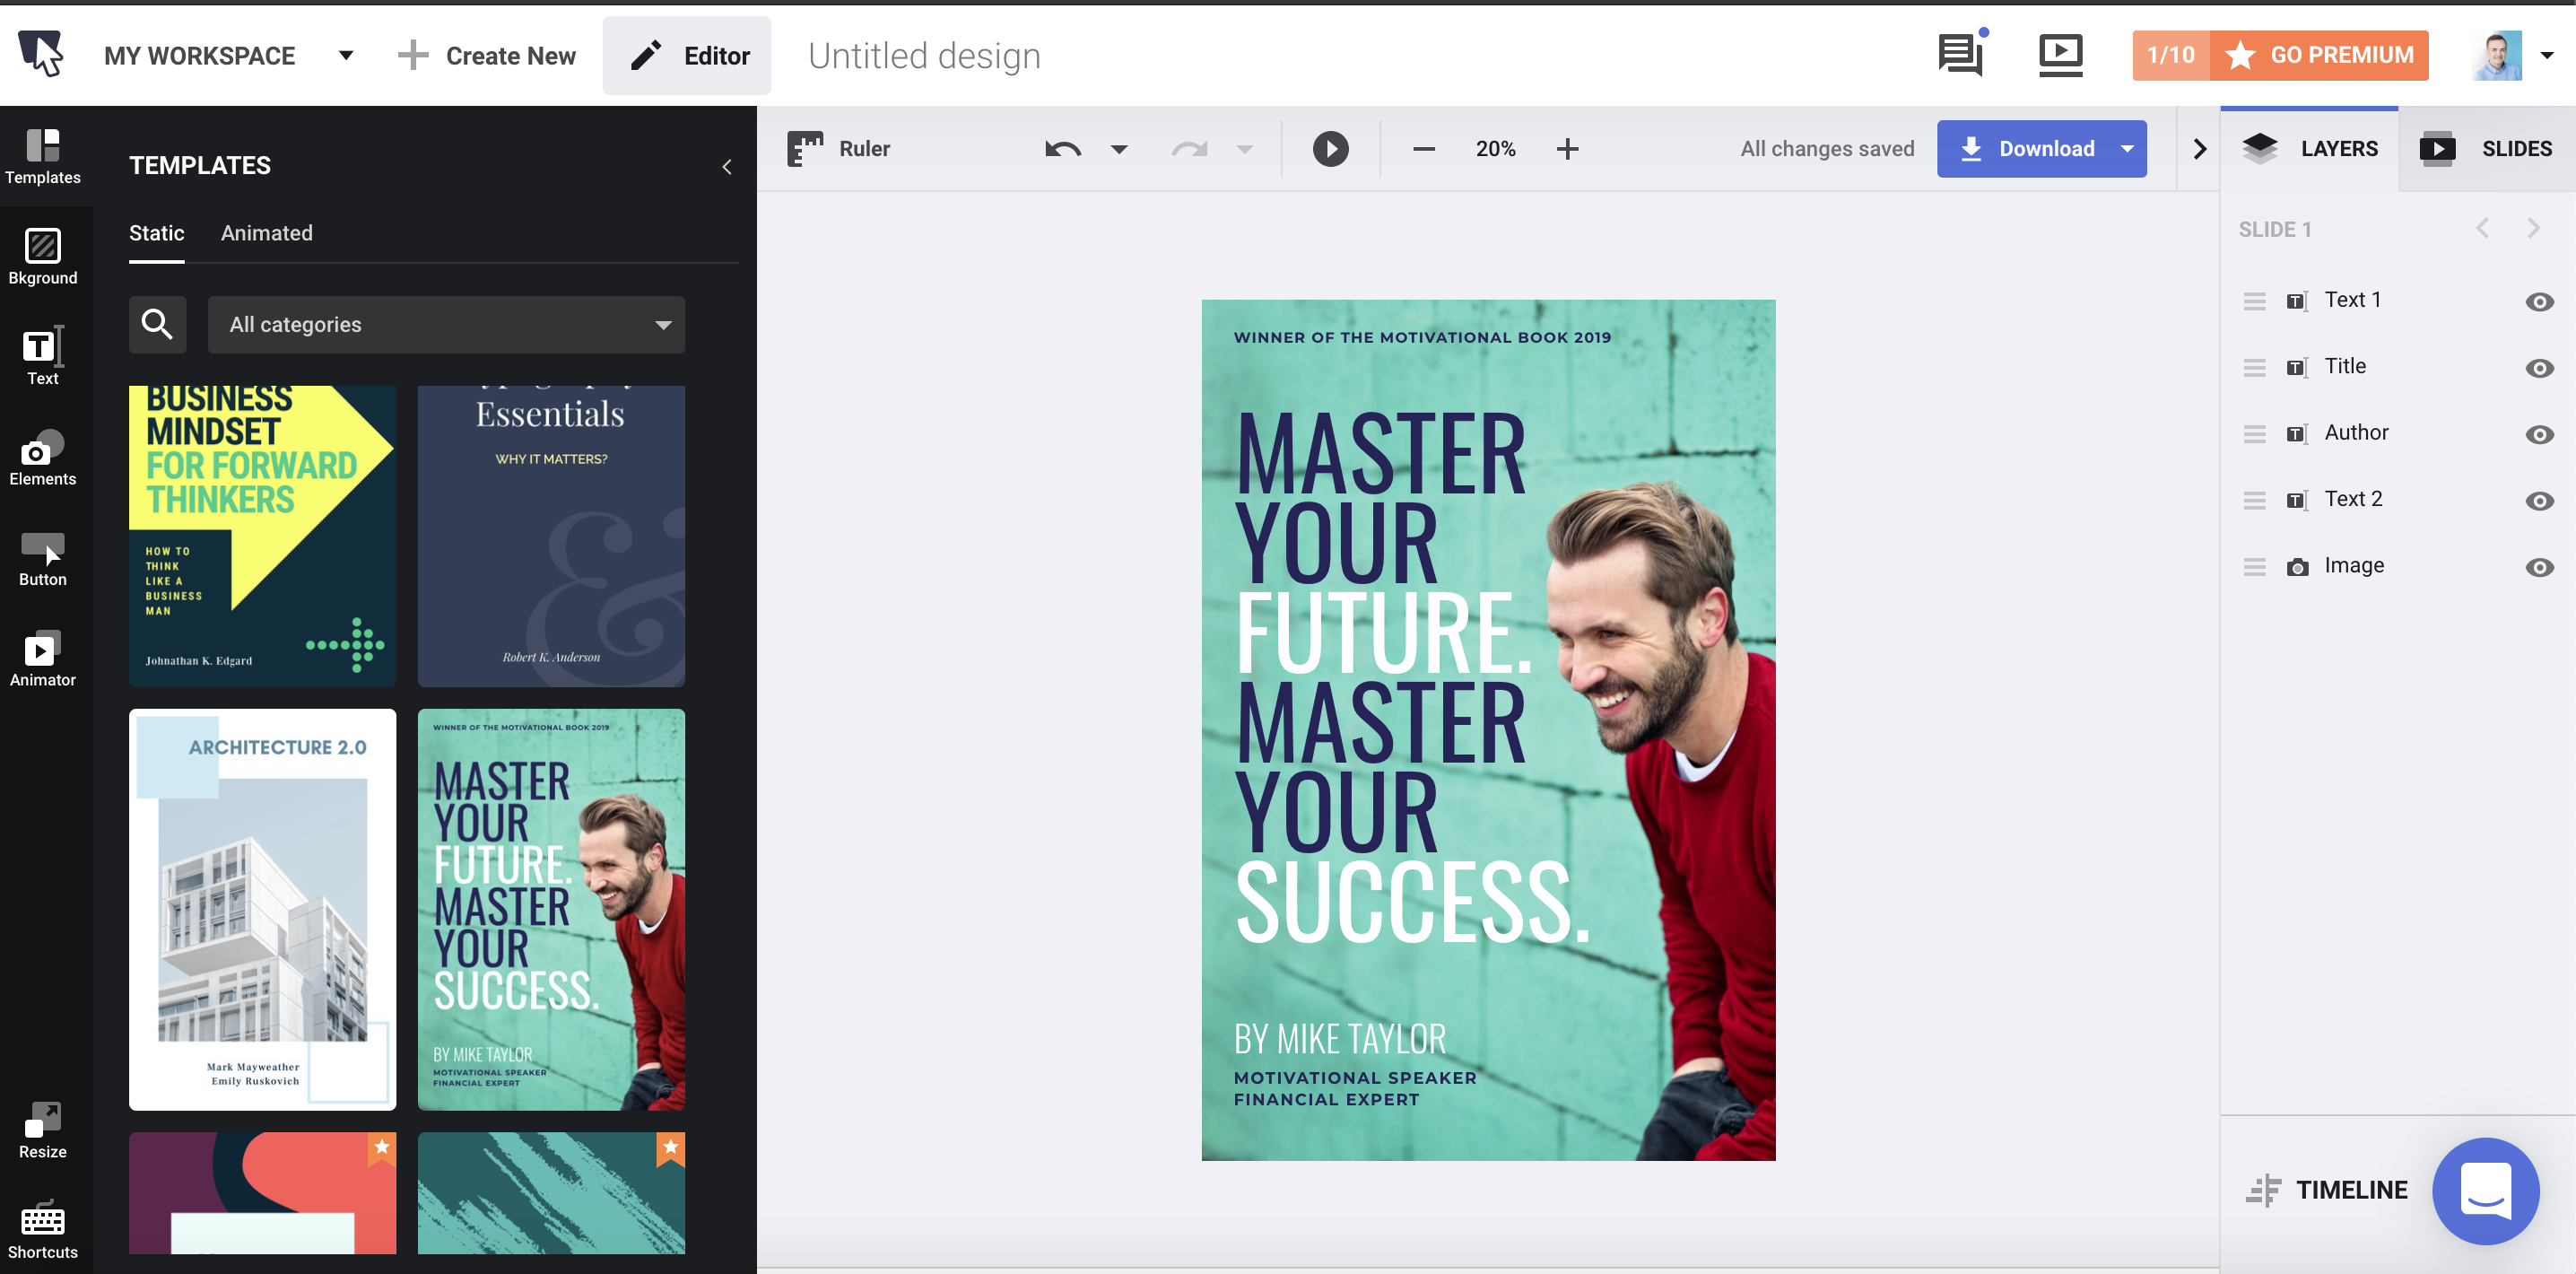 Ebook cover templates free and paid in Bannersnack creator.